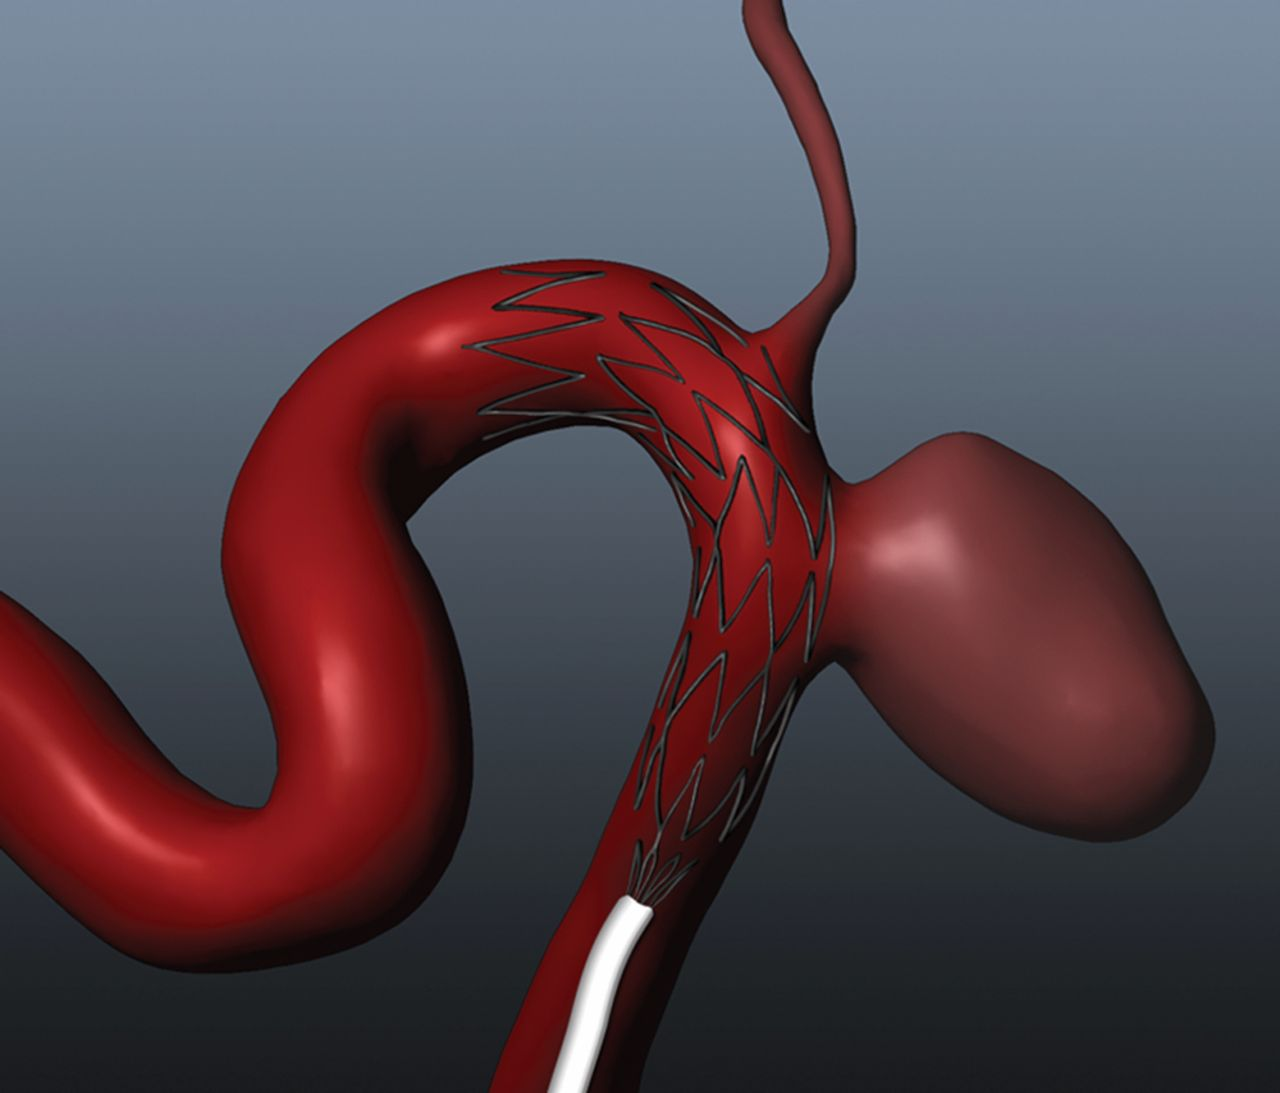 In vitro and in silico study of intracranial stent treatments for cerebral  aneurysms: effects on perforating vessel flows | Journal of  NeuroInterventional Surgery